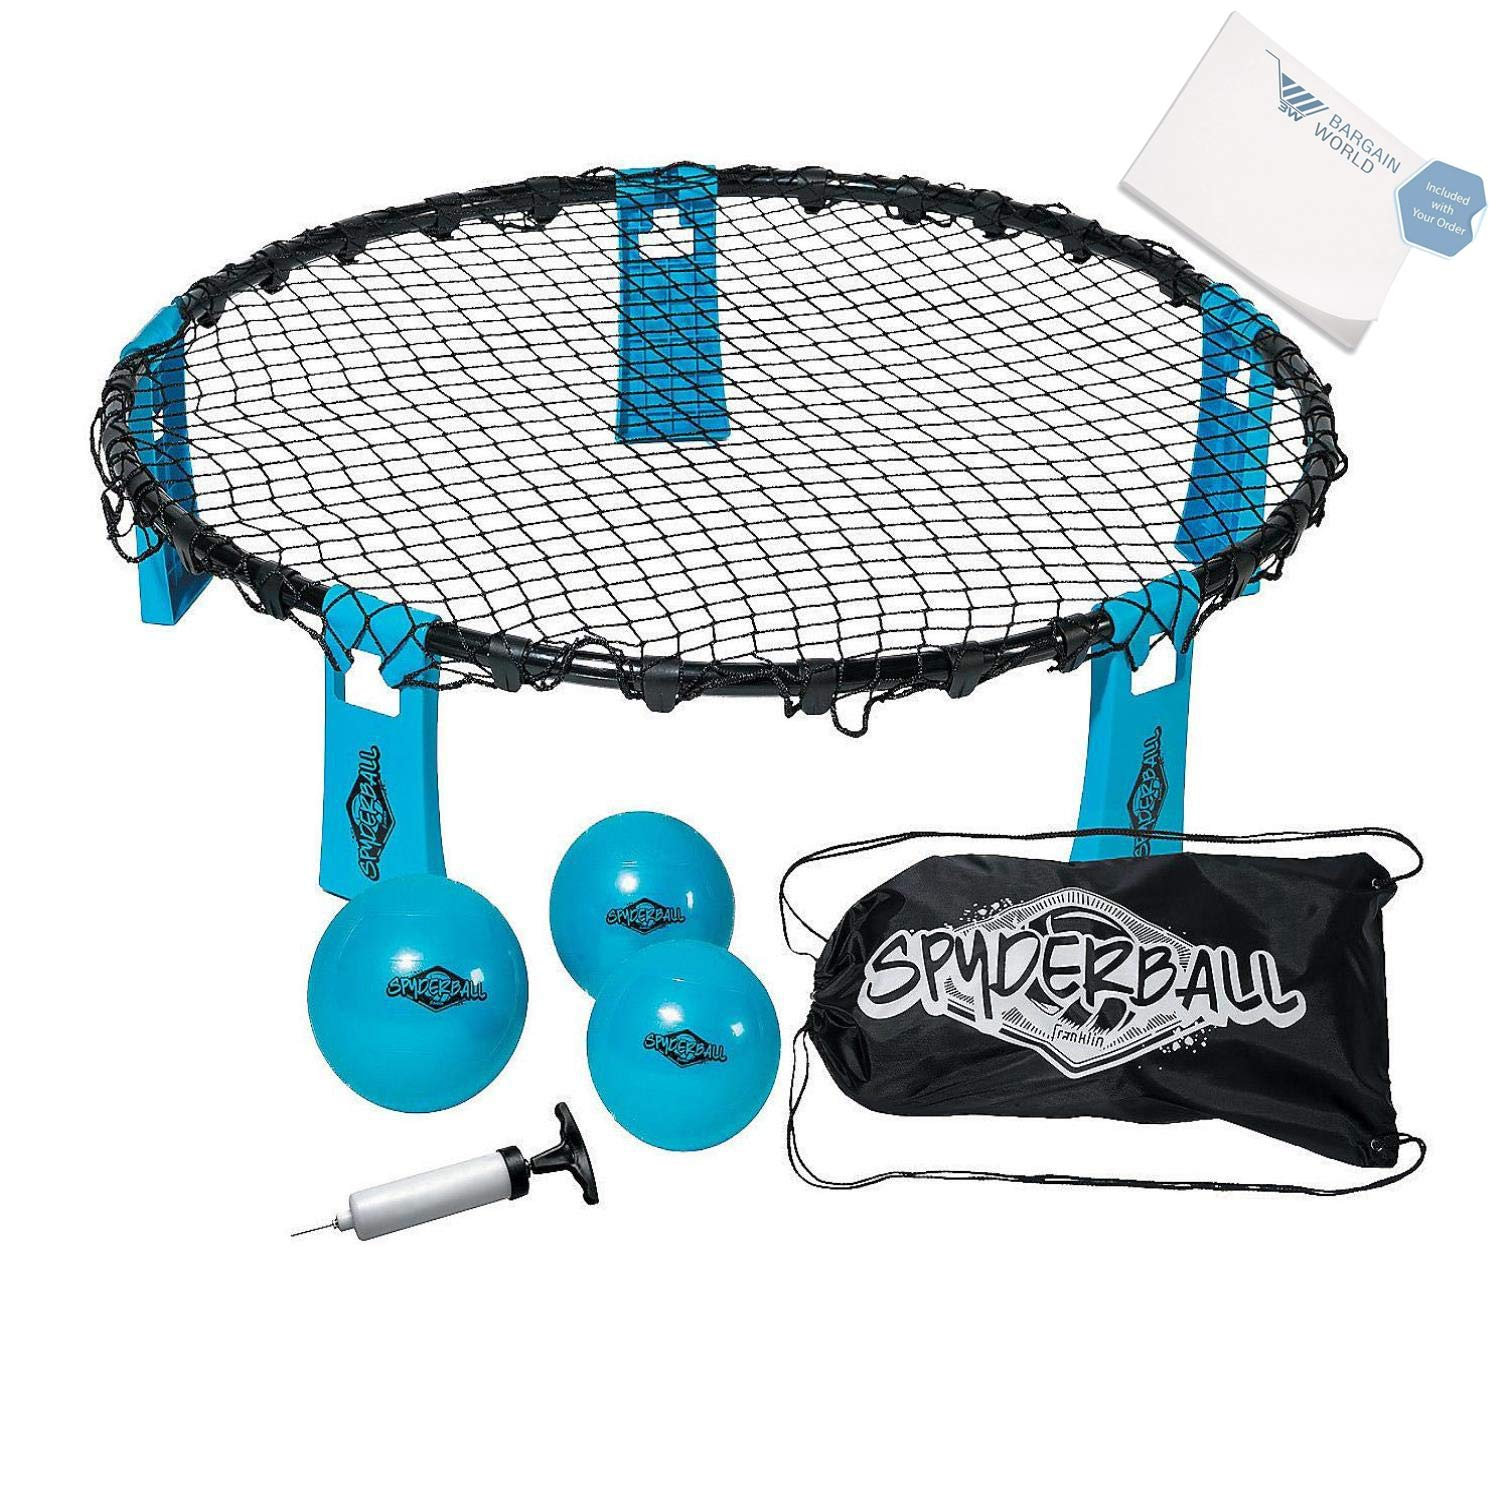 Bargain World Spyderball (With Sticky Notes) by Bargain World (Image #1)